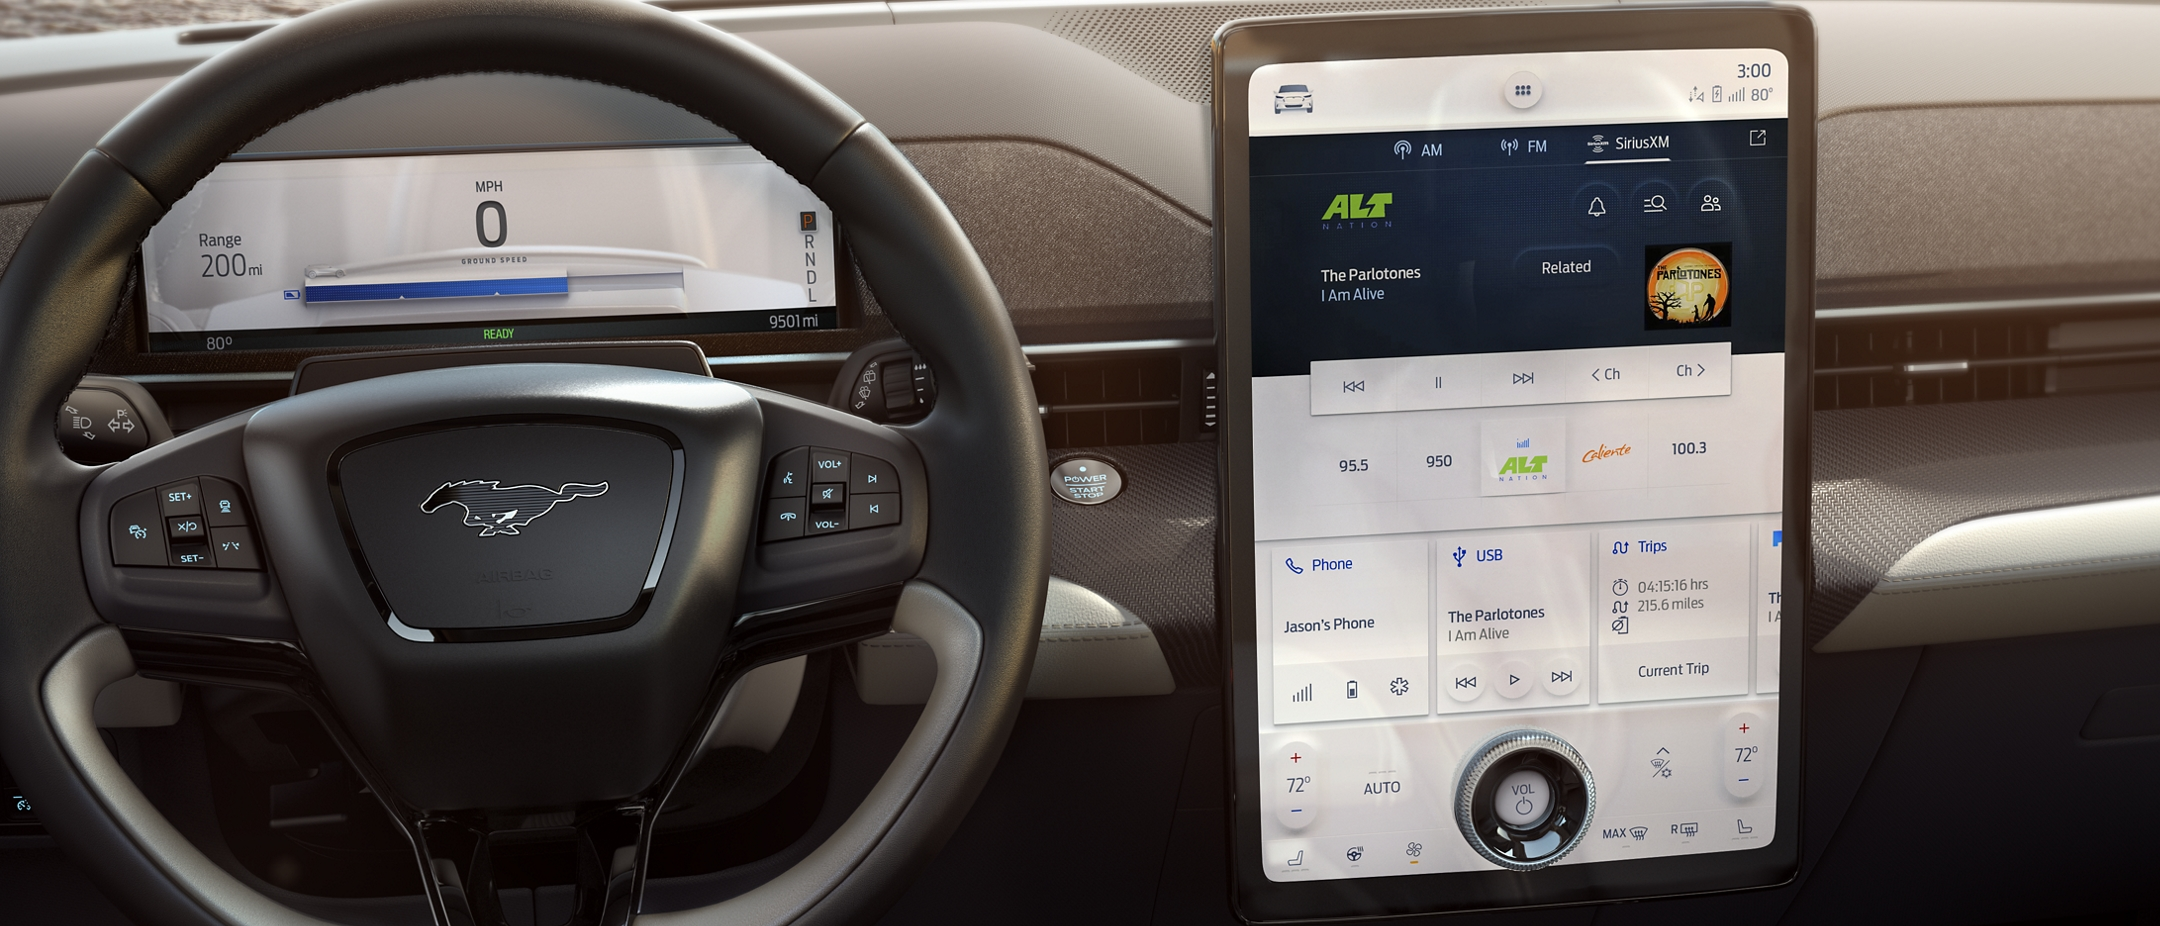 2020 Ford vs Jeep Technology Features near Waukegan, IL